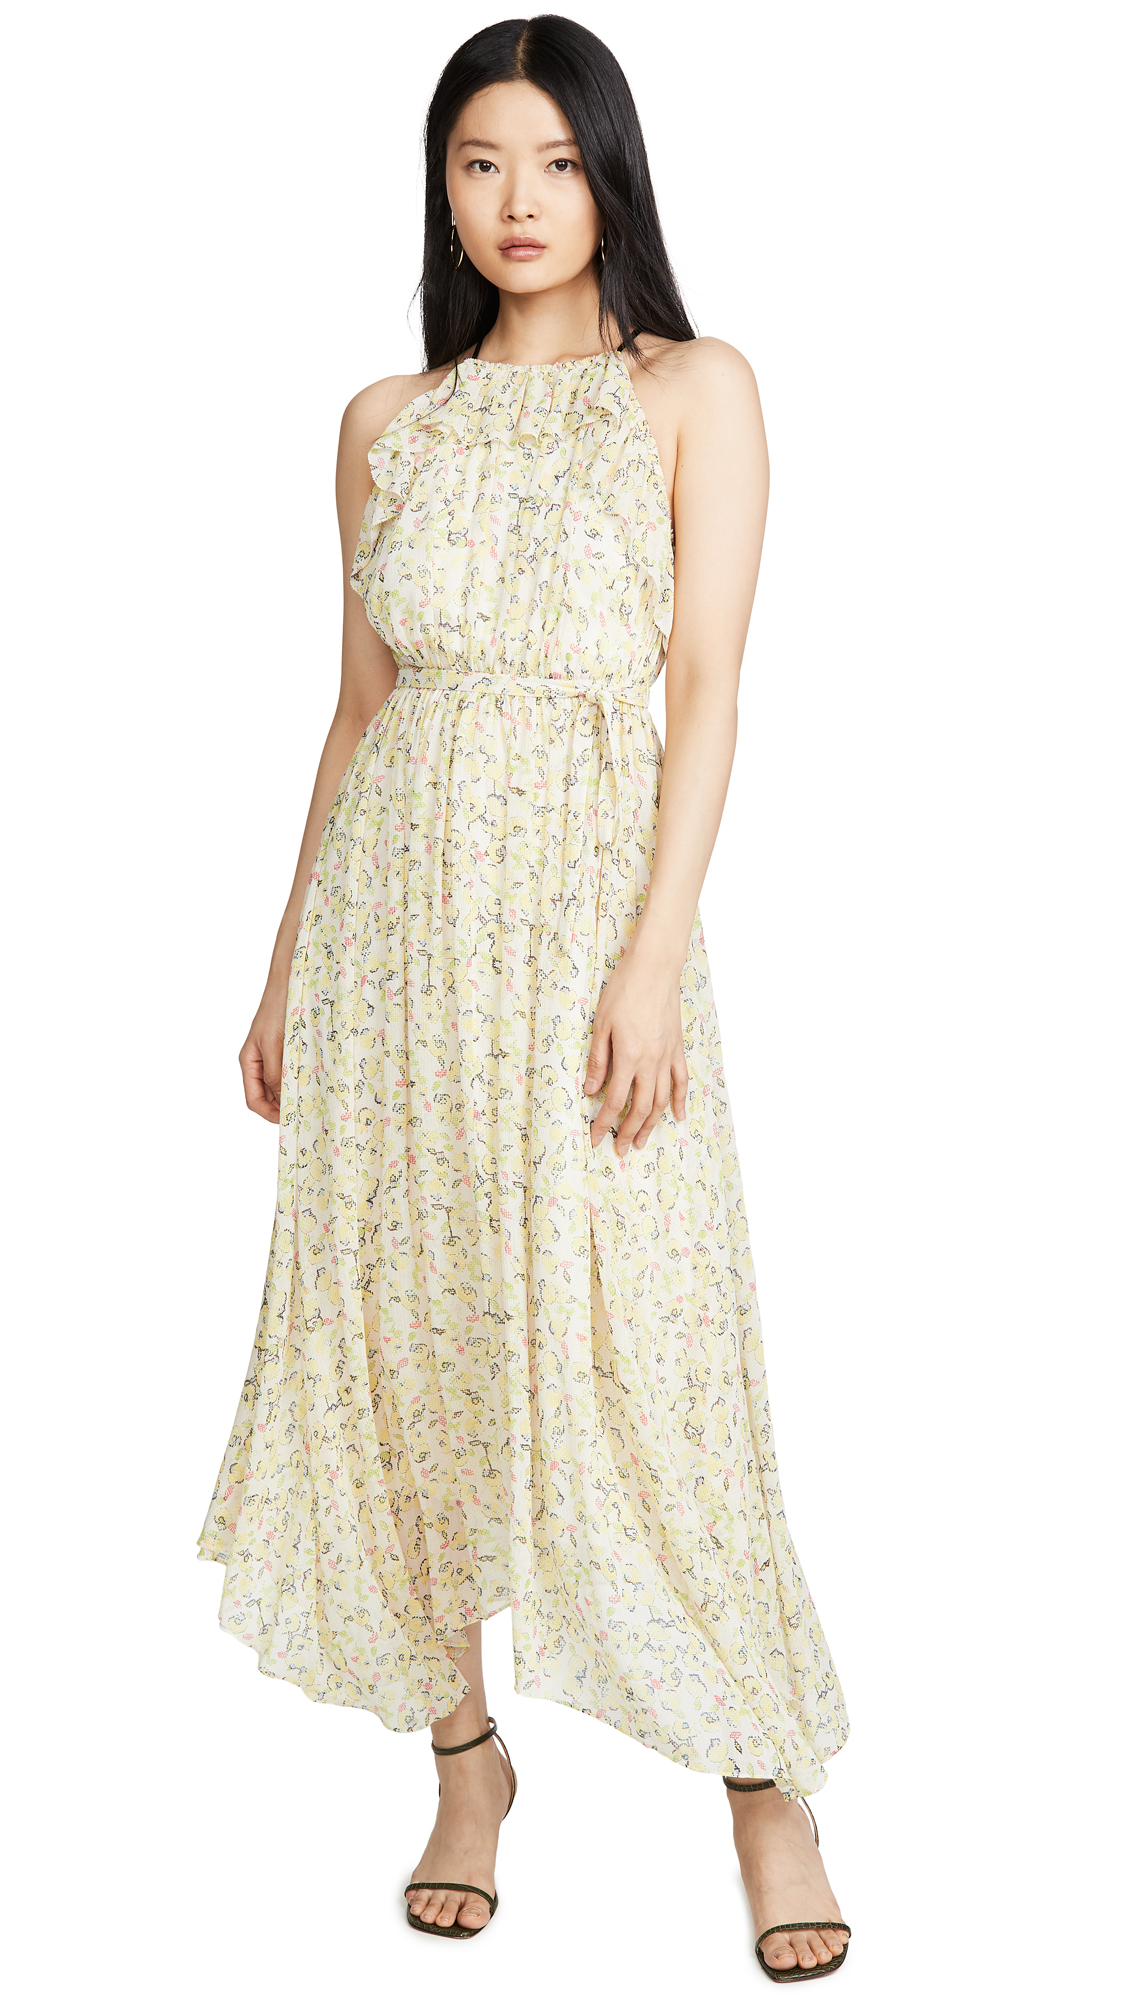 Jason Wu Floral Maxi Dress - 50% Off Sale